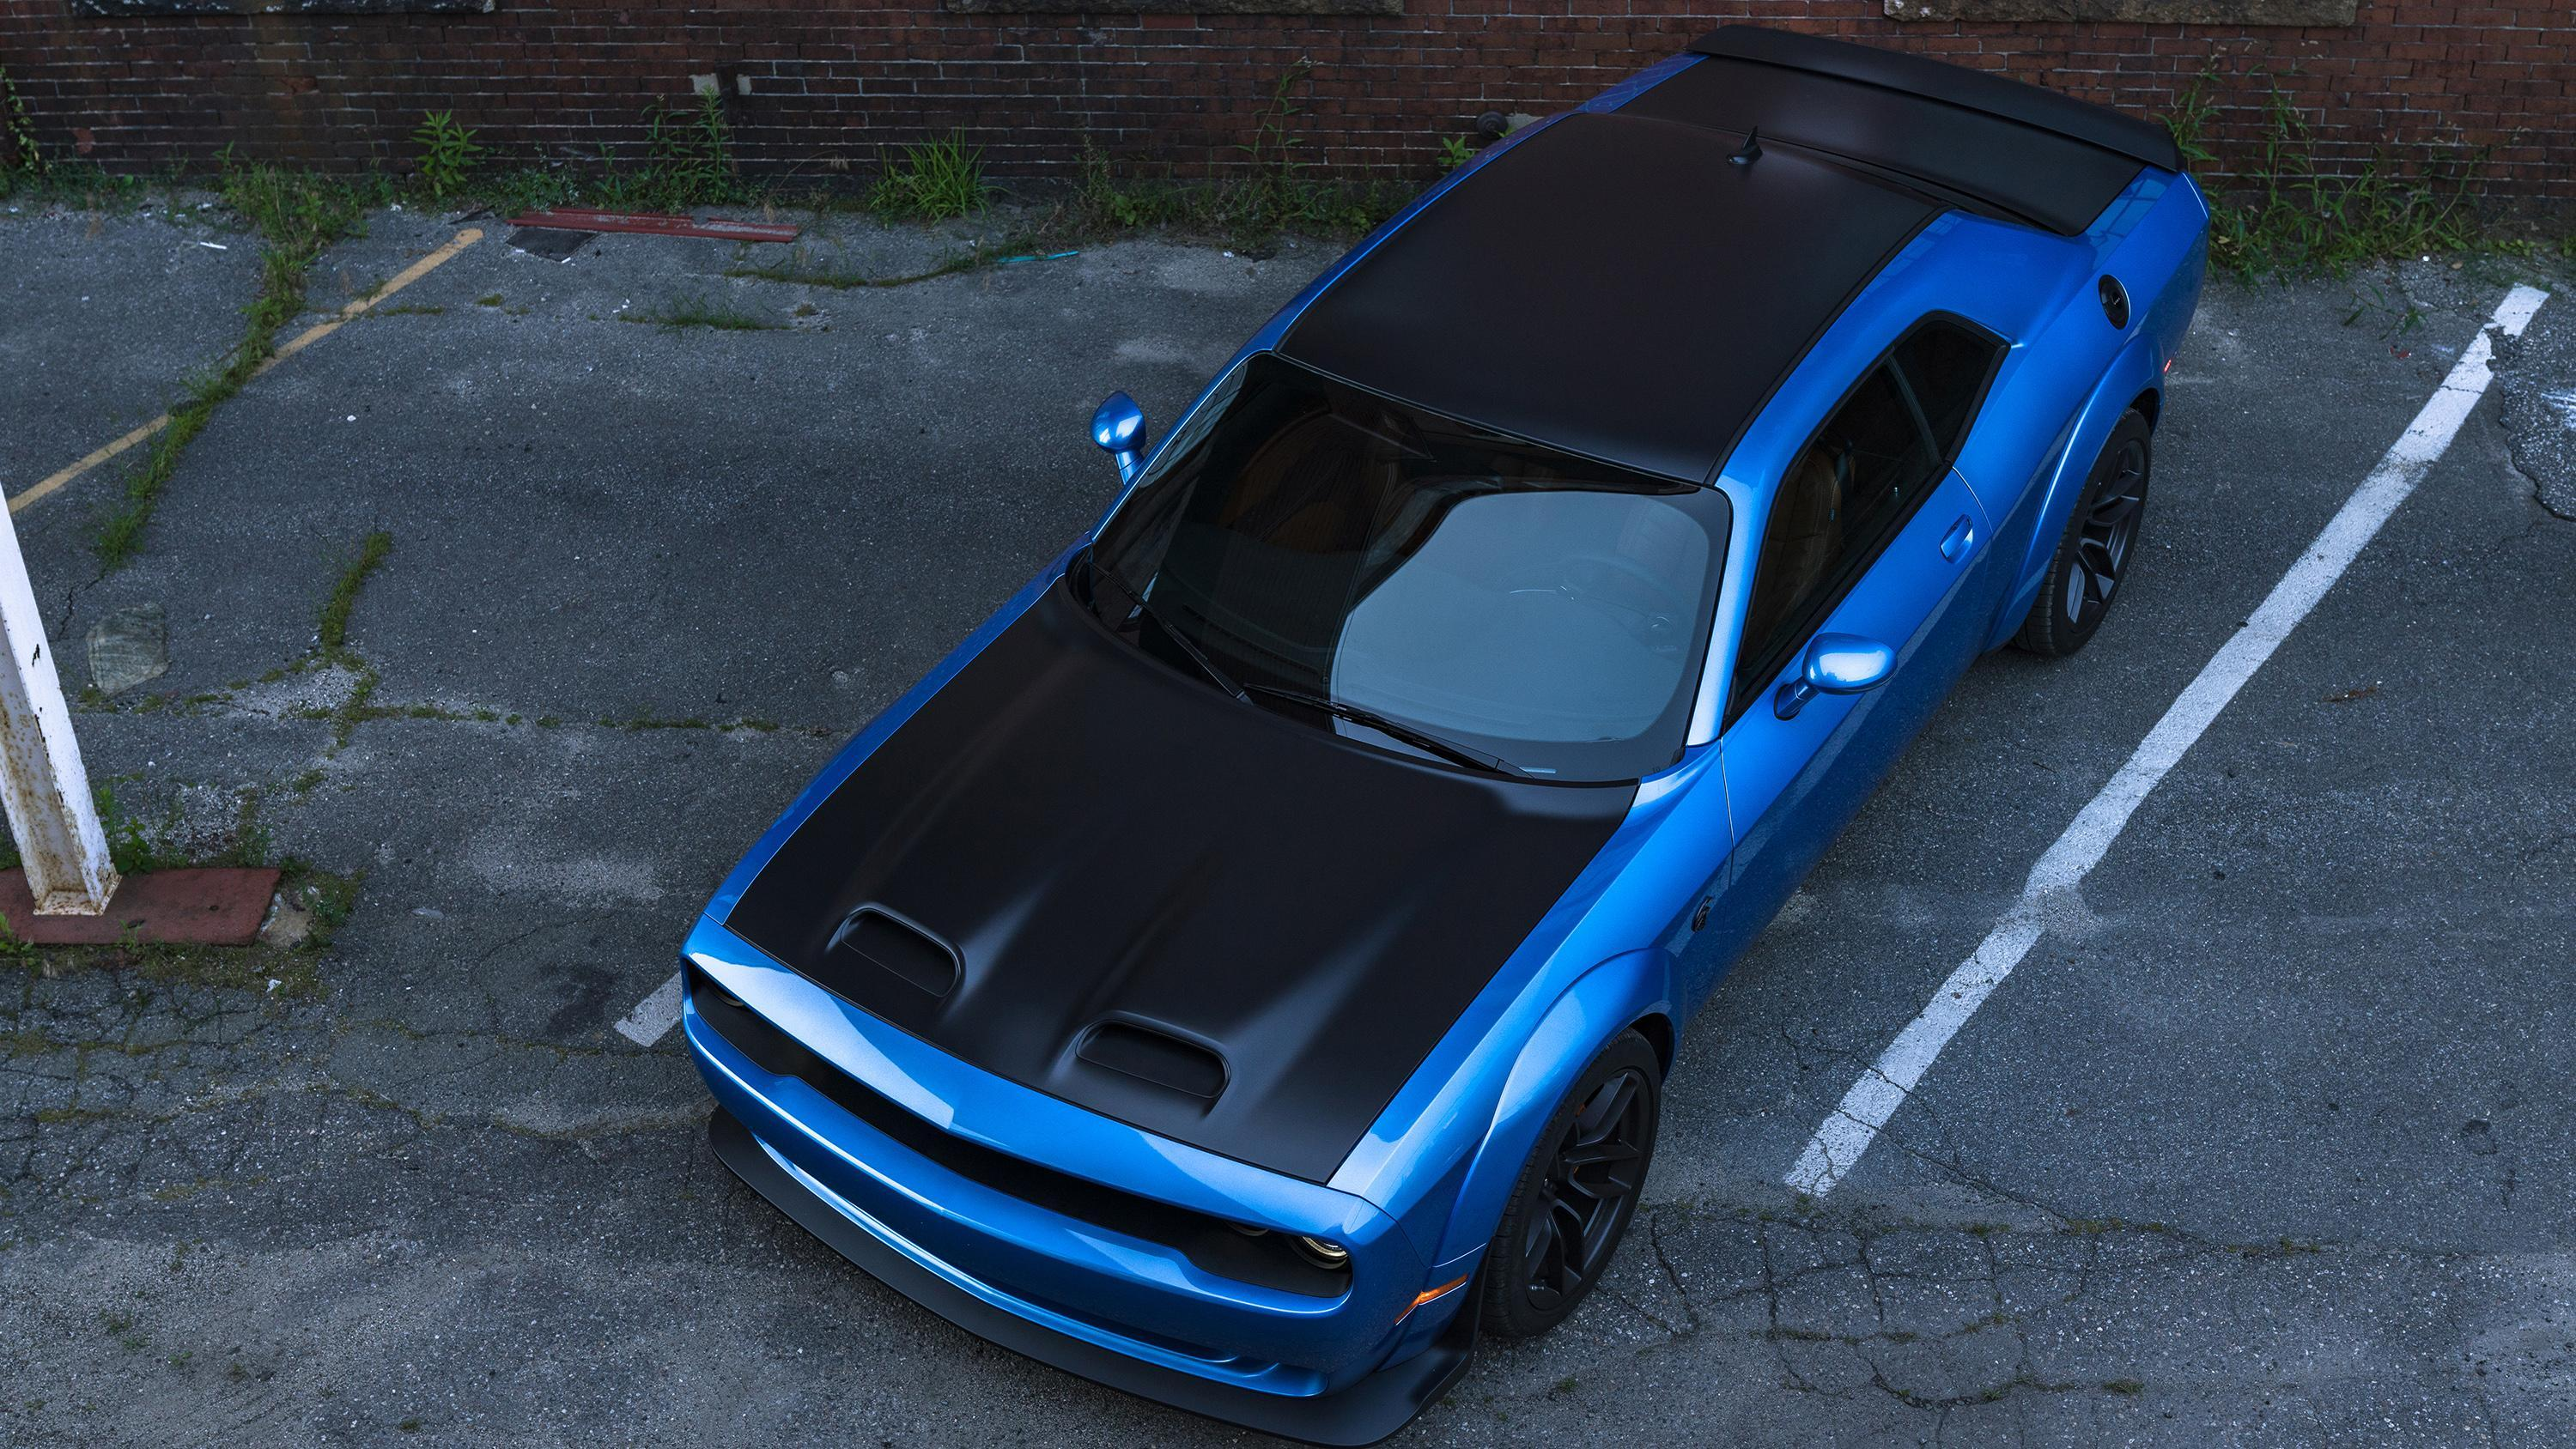 2019 Dodge Challenger SRT Hellcat Redeye Widebody Wallpapers